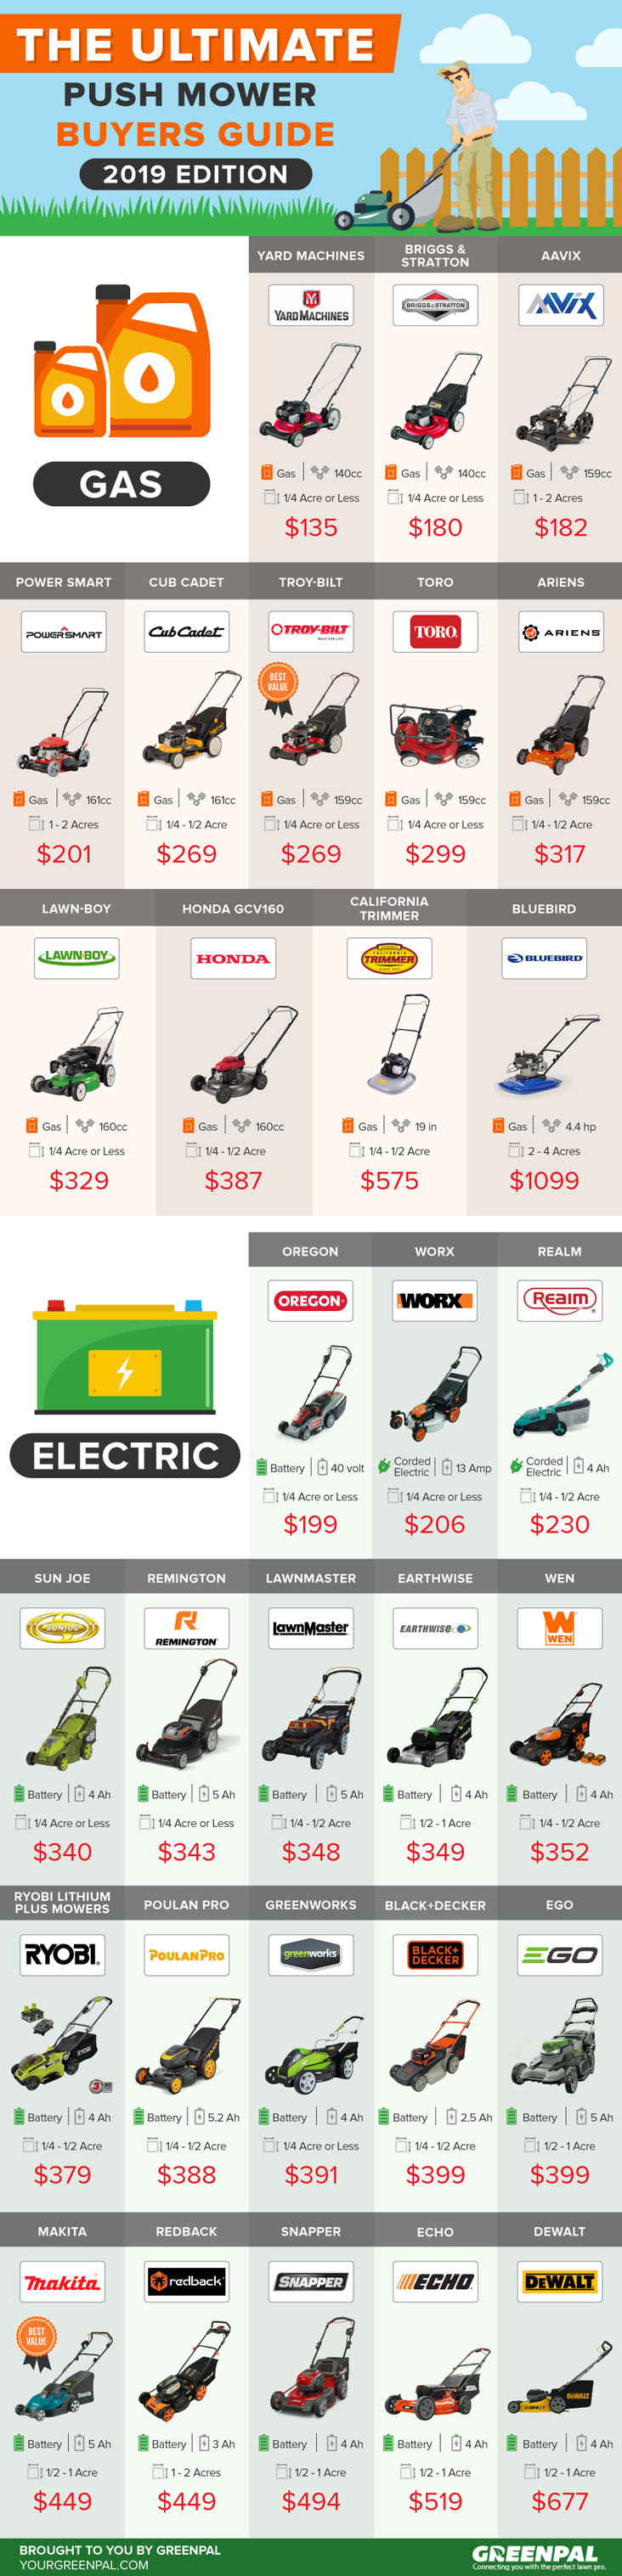 The Ultimate 2019 Push Mower Buyers Guide